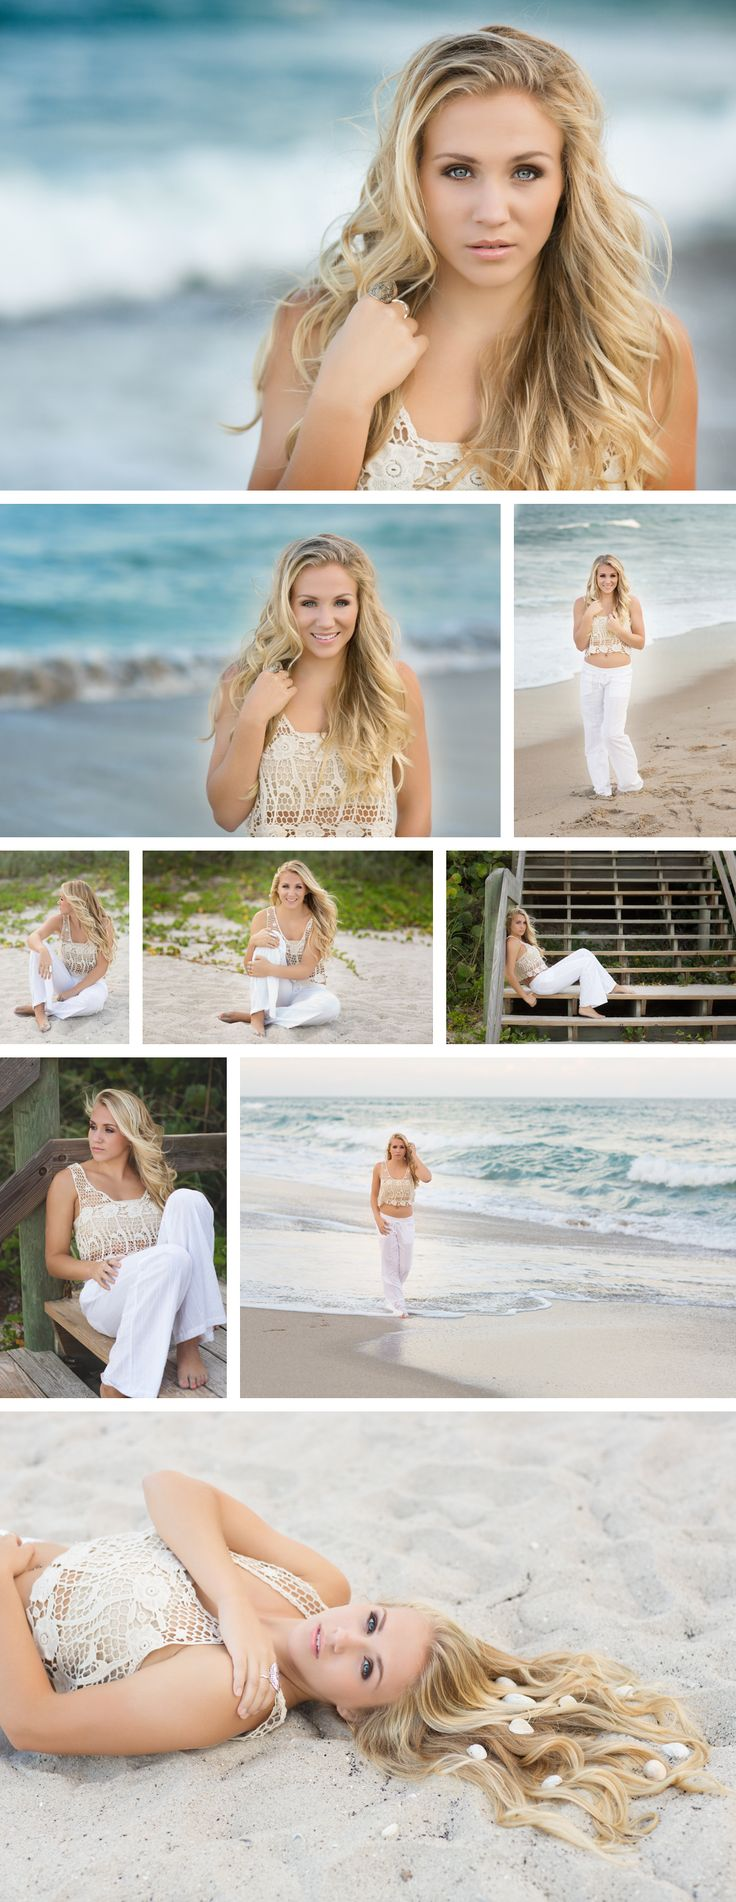 Alexandra Feild Photography Senior Portraits Viera, Melbourne, Lake Nona, Winter Park, Orlando Florida Senior photos at the beach, beach portrait session posing, girl. idea inspiracion book de fotos Cordoba. Fotografa